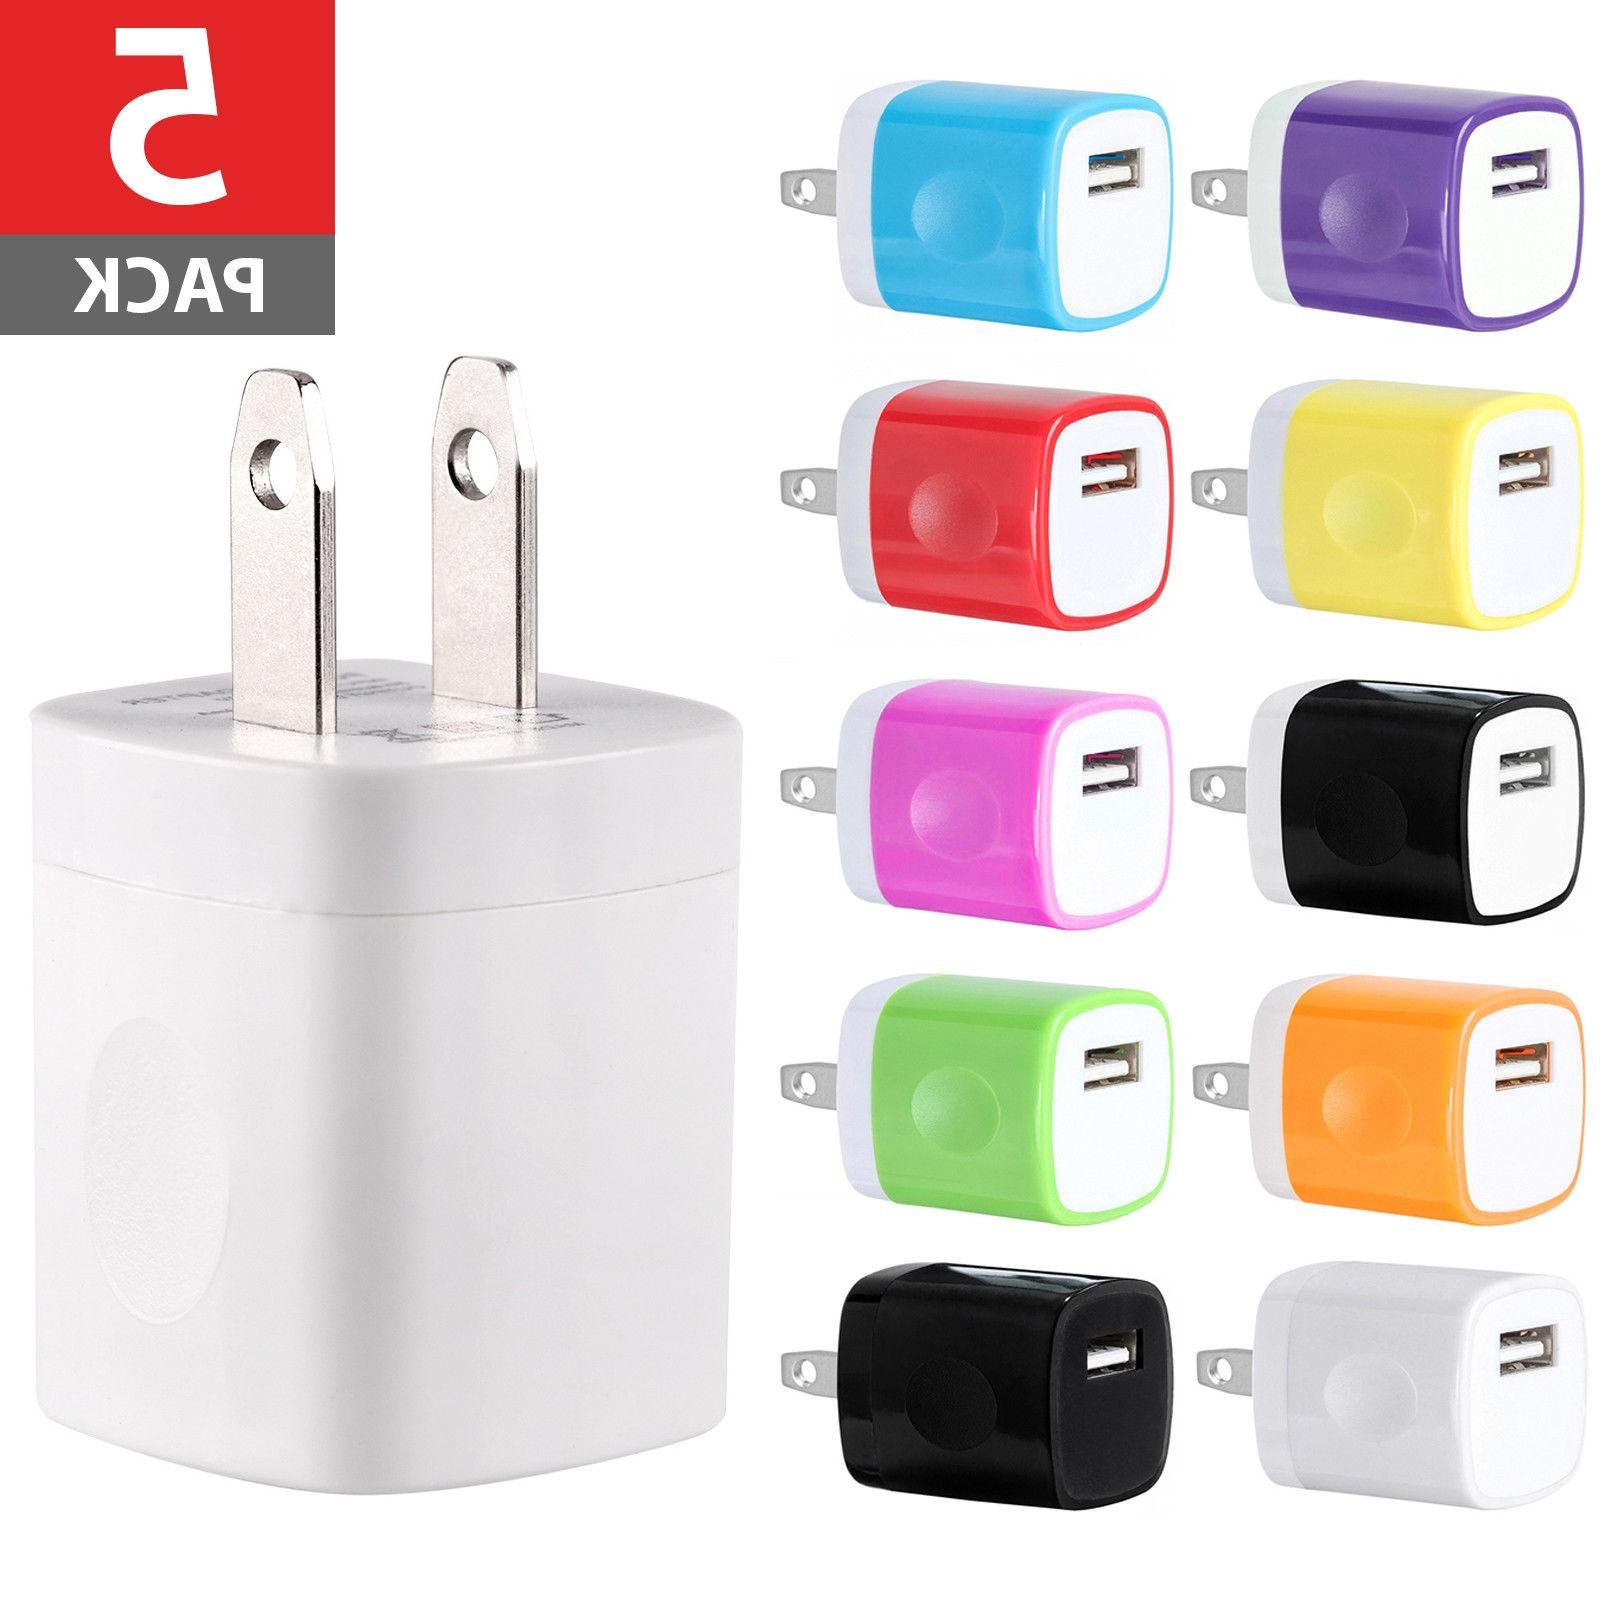 5-PACK USB Wall Charger AC Power Adapter US Plug FOR iPhone